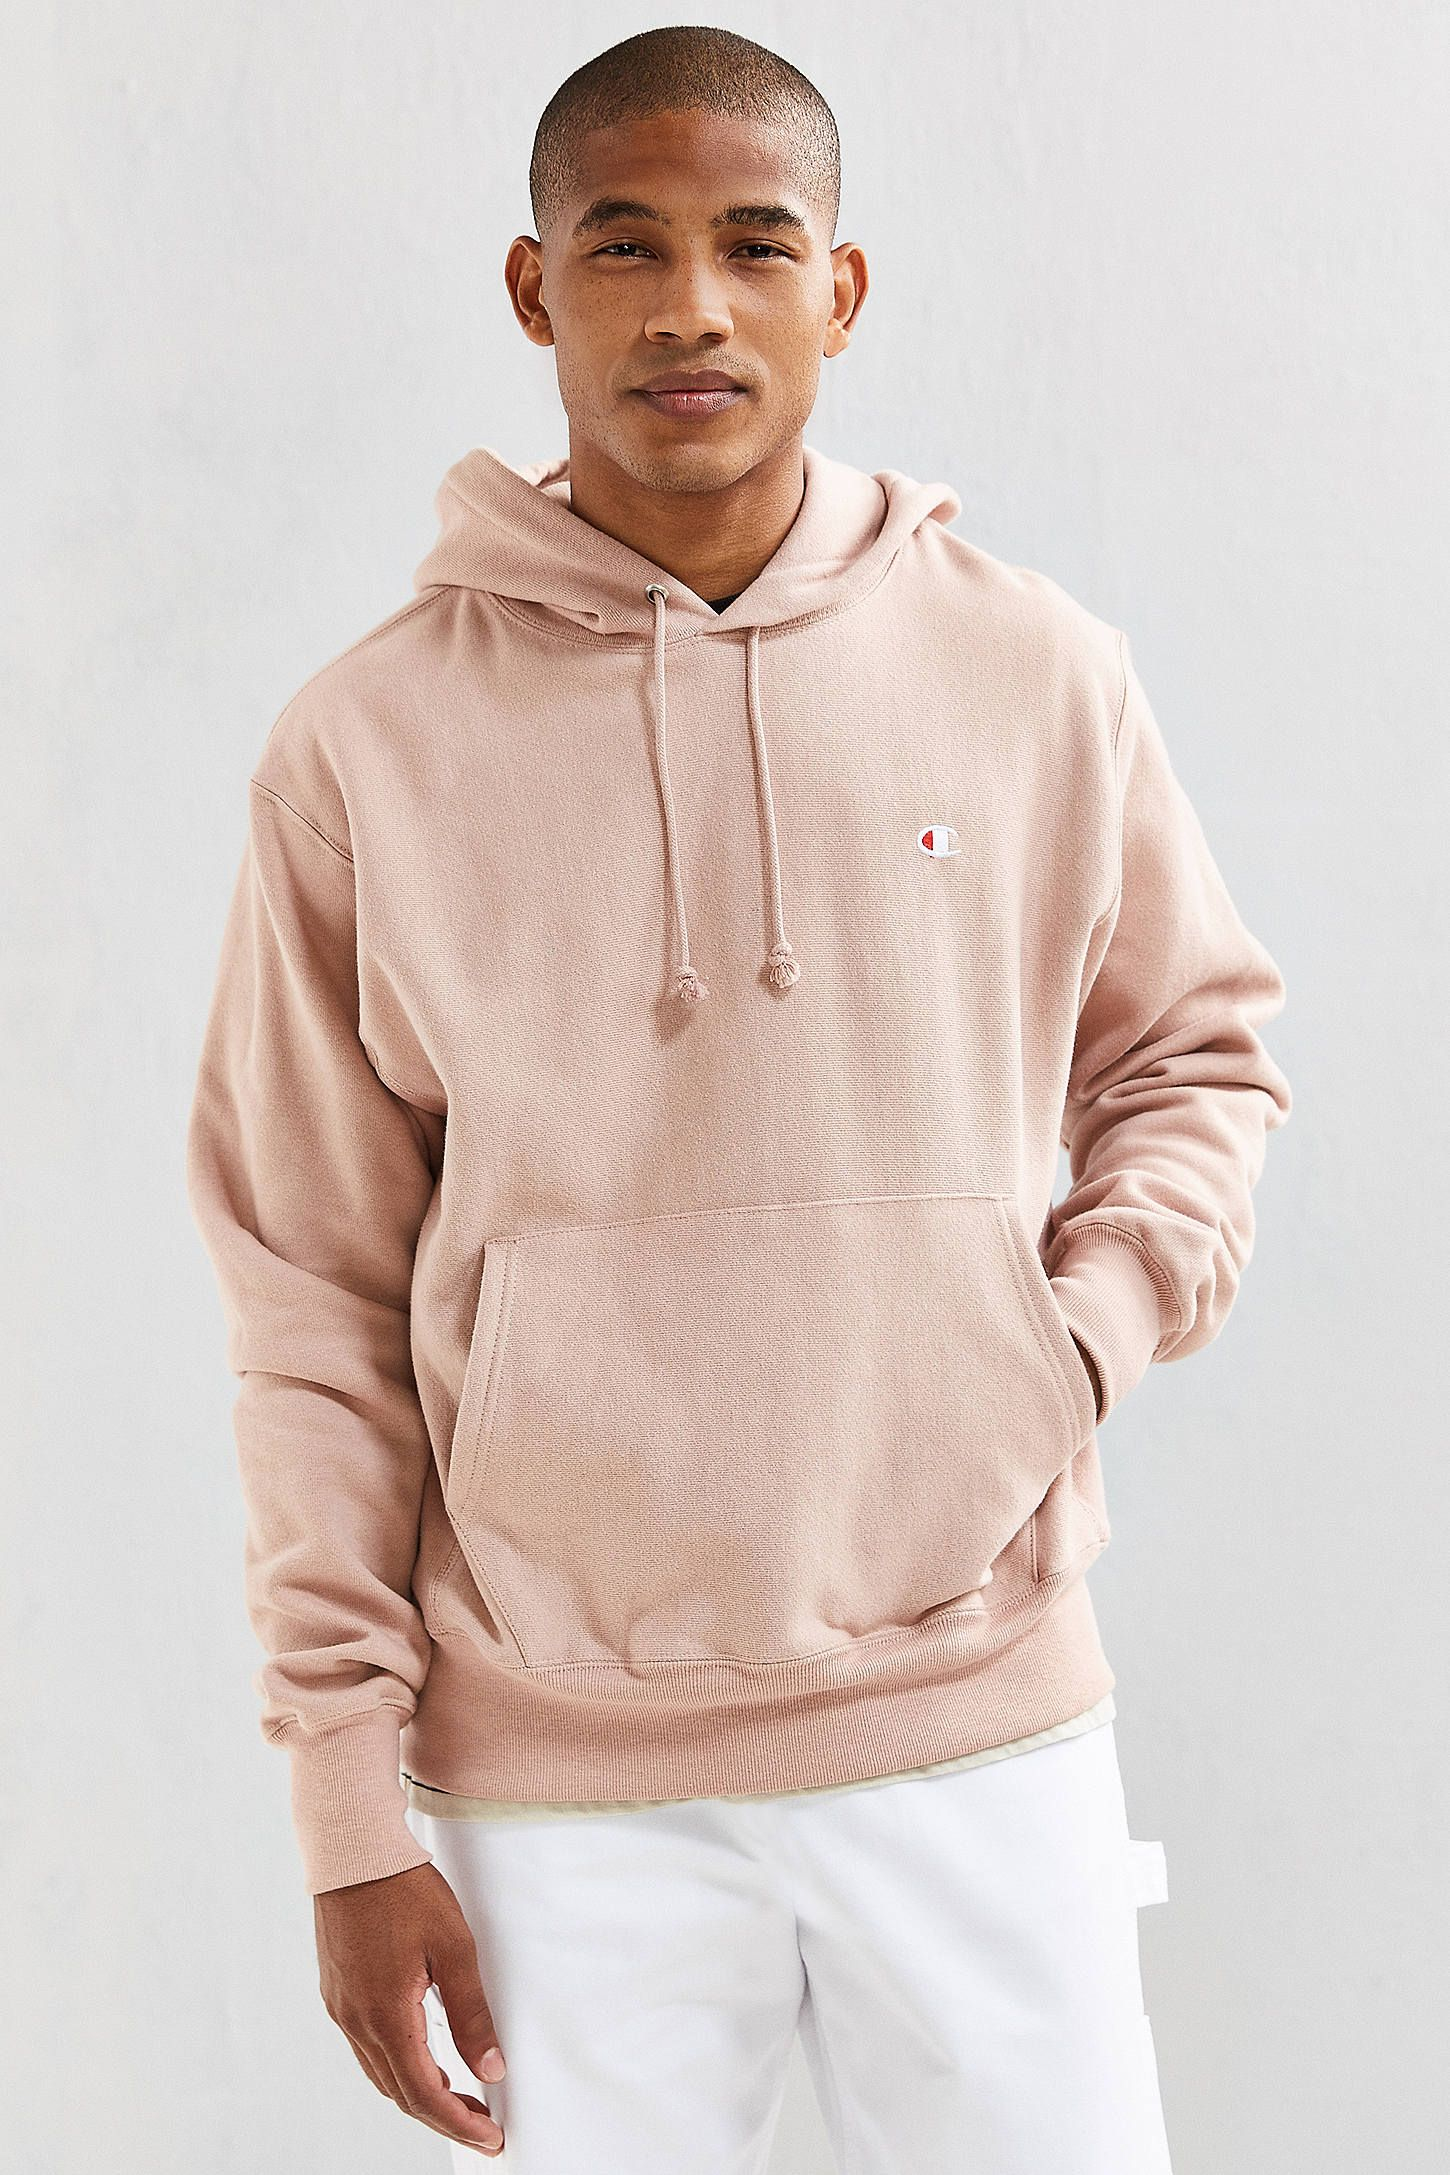 a2e7cd29e621 Champion Reverse Weave Hoodie Sweatshirt in 2019 | Clothes | Pink ...